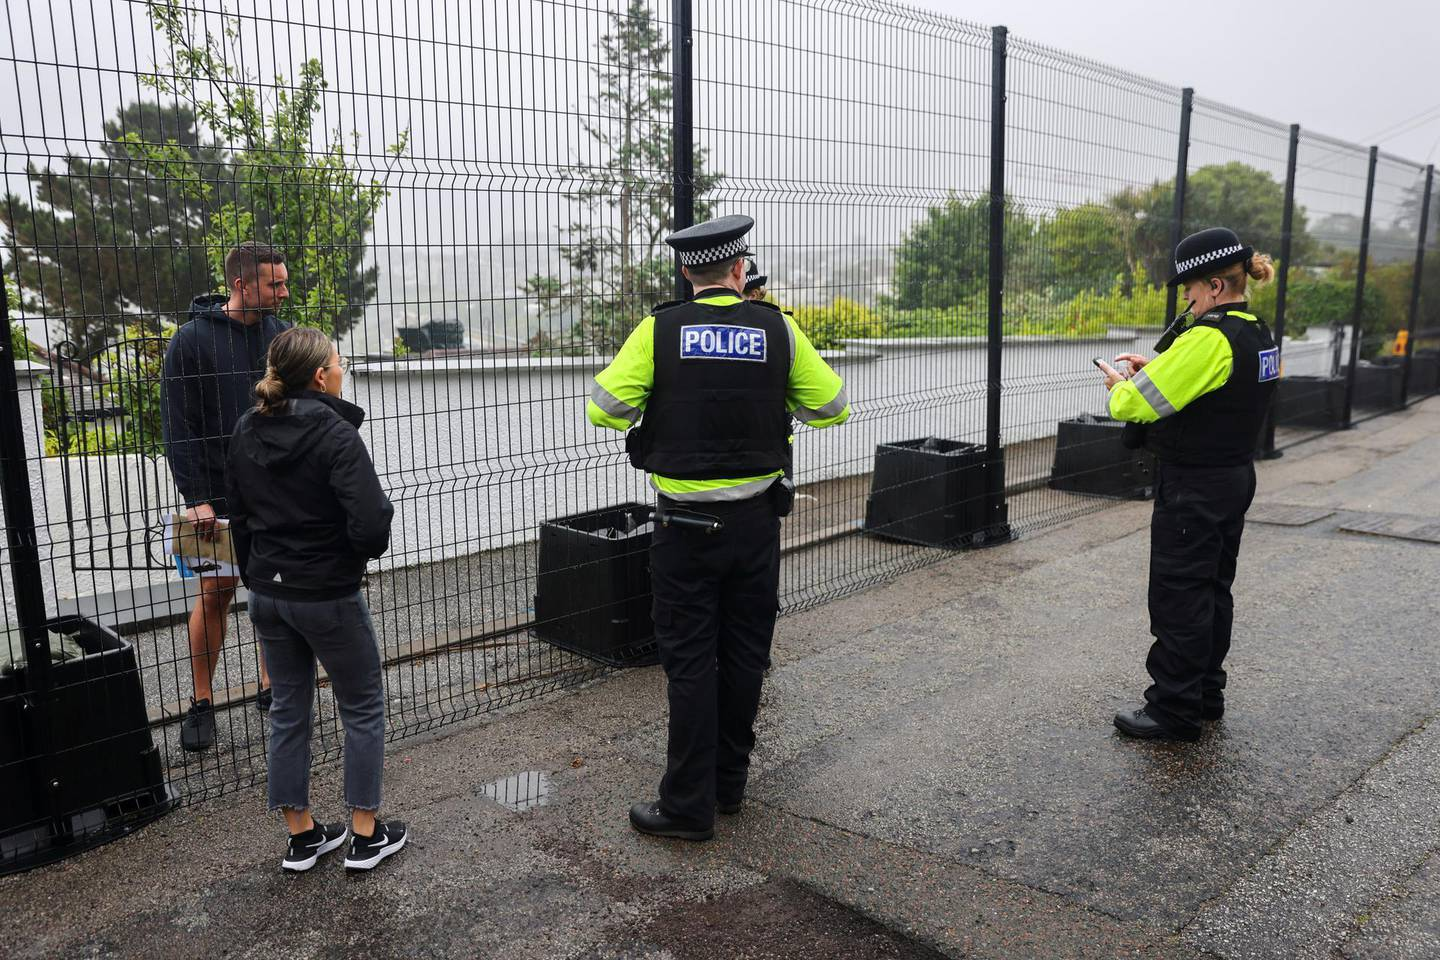 Police officers talk to residents by a newly erected fence in Carbis Bay, ahead of the G7 summit, in Cornwall, Britain, June 5, 2021. REUTERS/Tom Nicholson